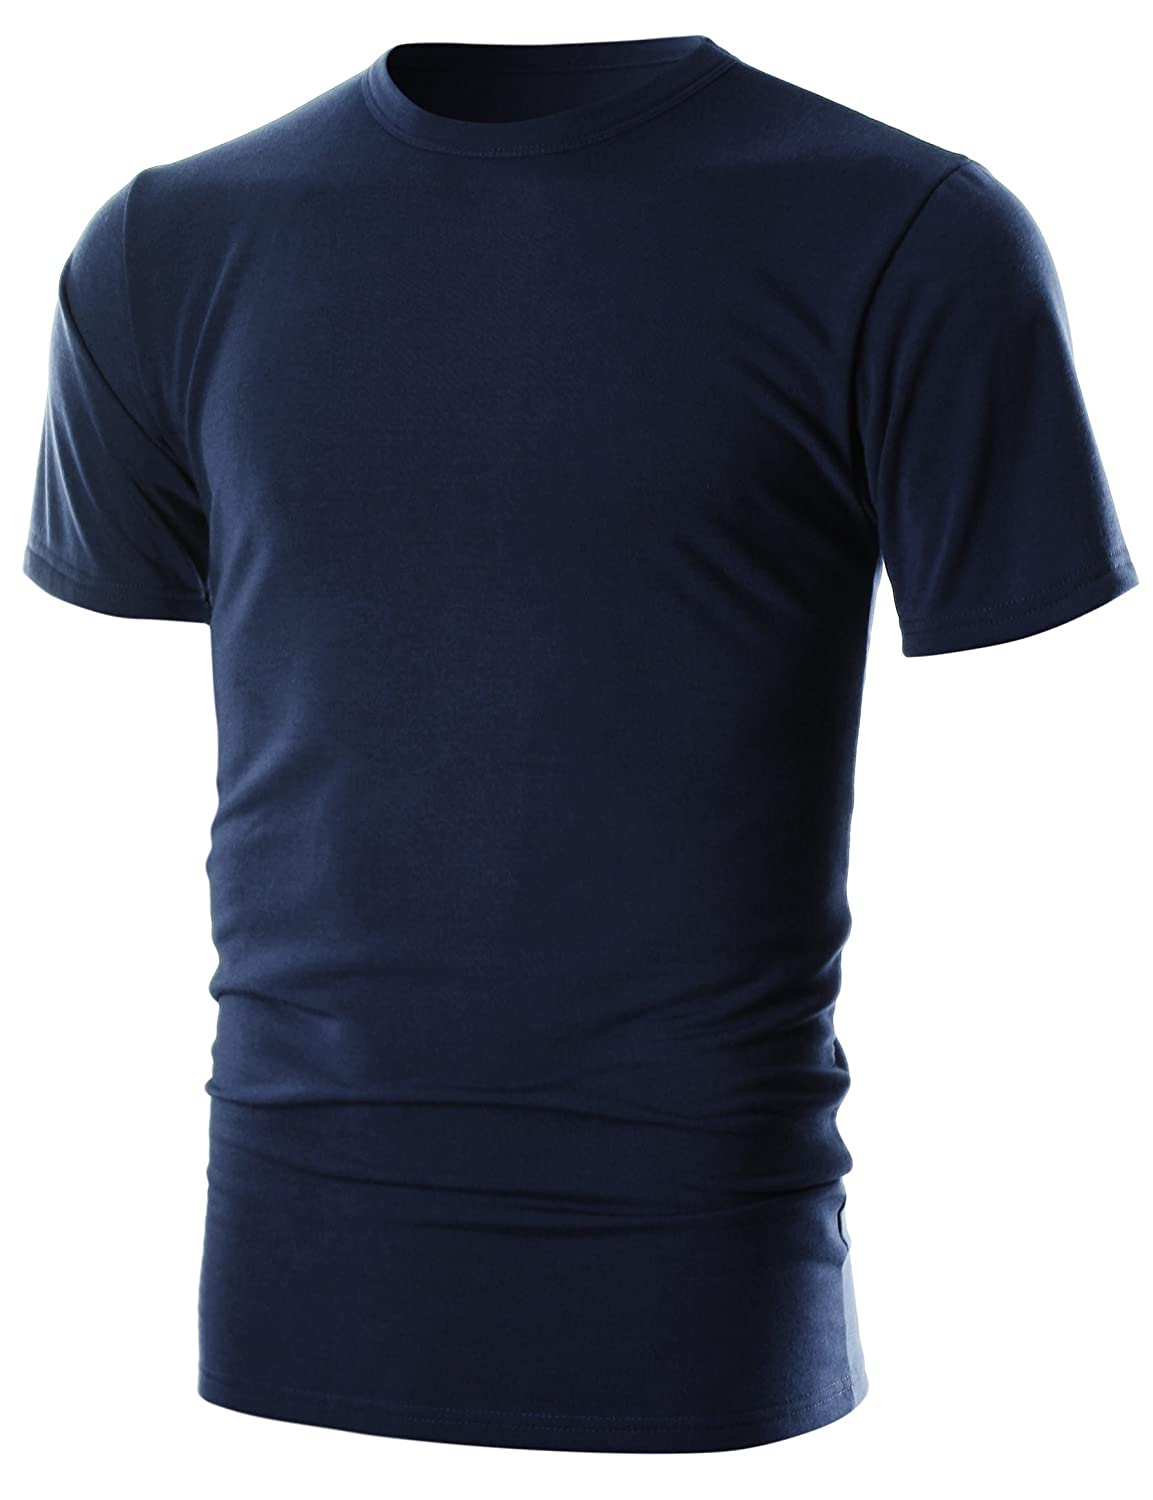 GIVON SHIRT メンズ B07DCHK1PD Small|Dcp133-navy Dcp133-navy Small